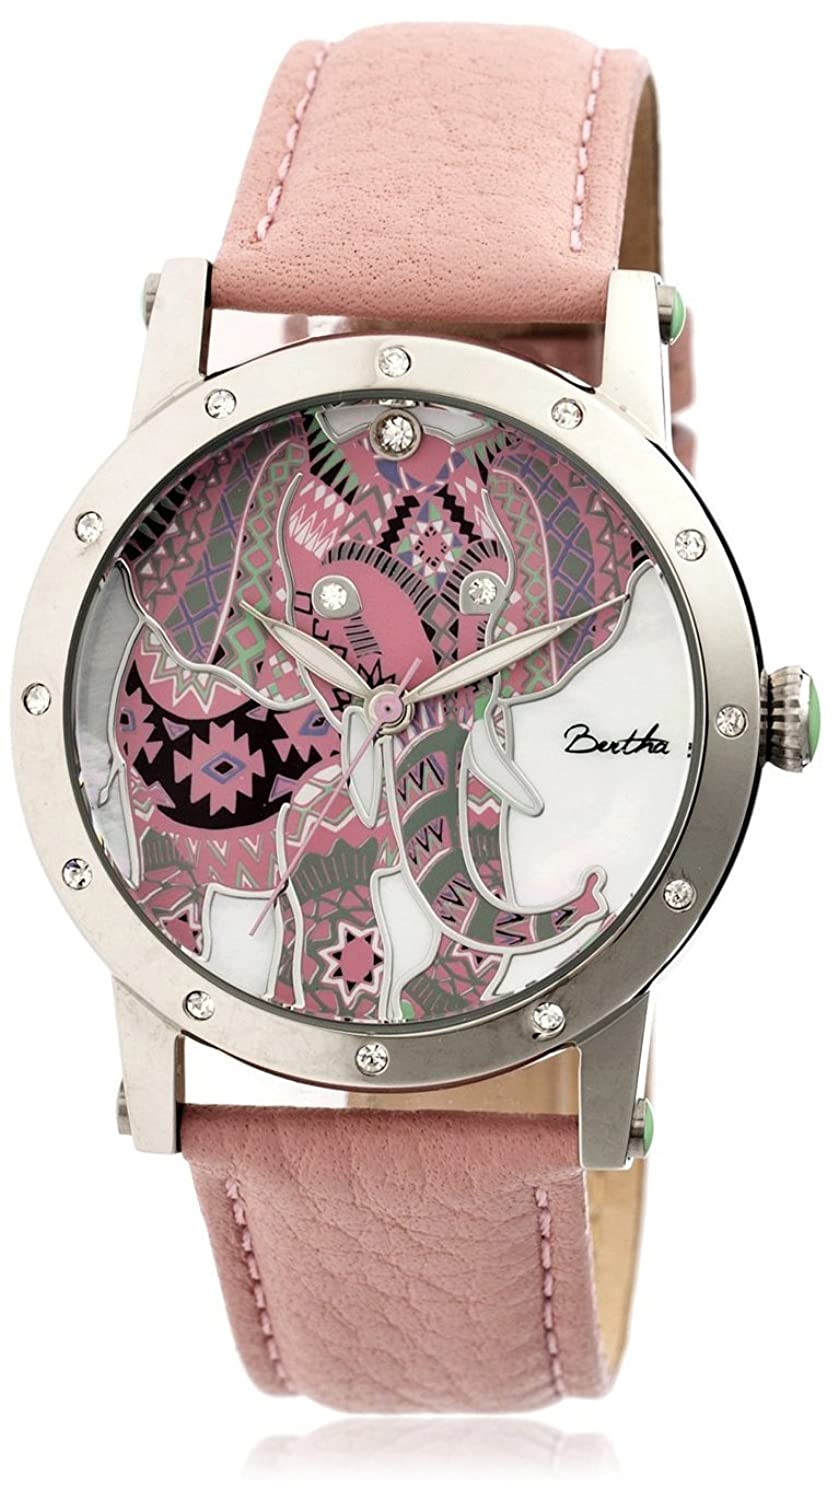 Amazon.com: Bertha Womens BTHBR5702 Betsy Light Pink/Multicolor Leather Watch: Bertha: Watches